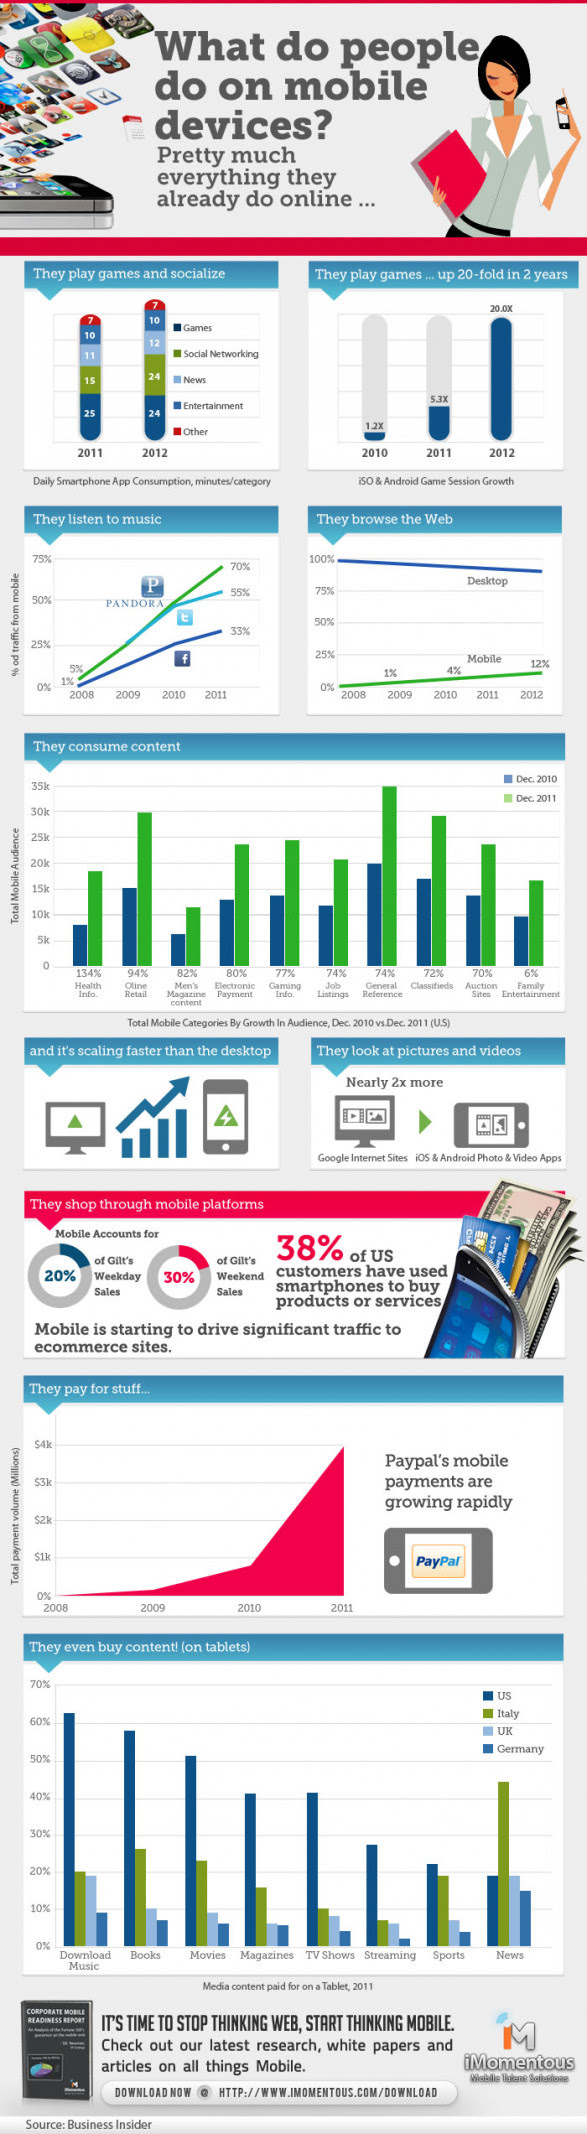 What do people do on mobile devices